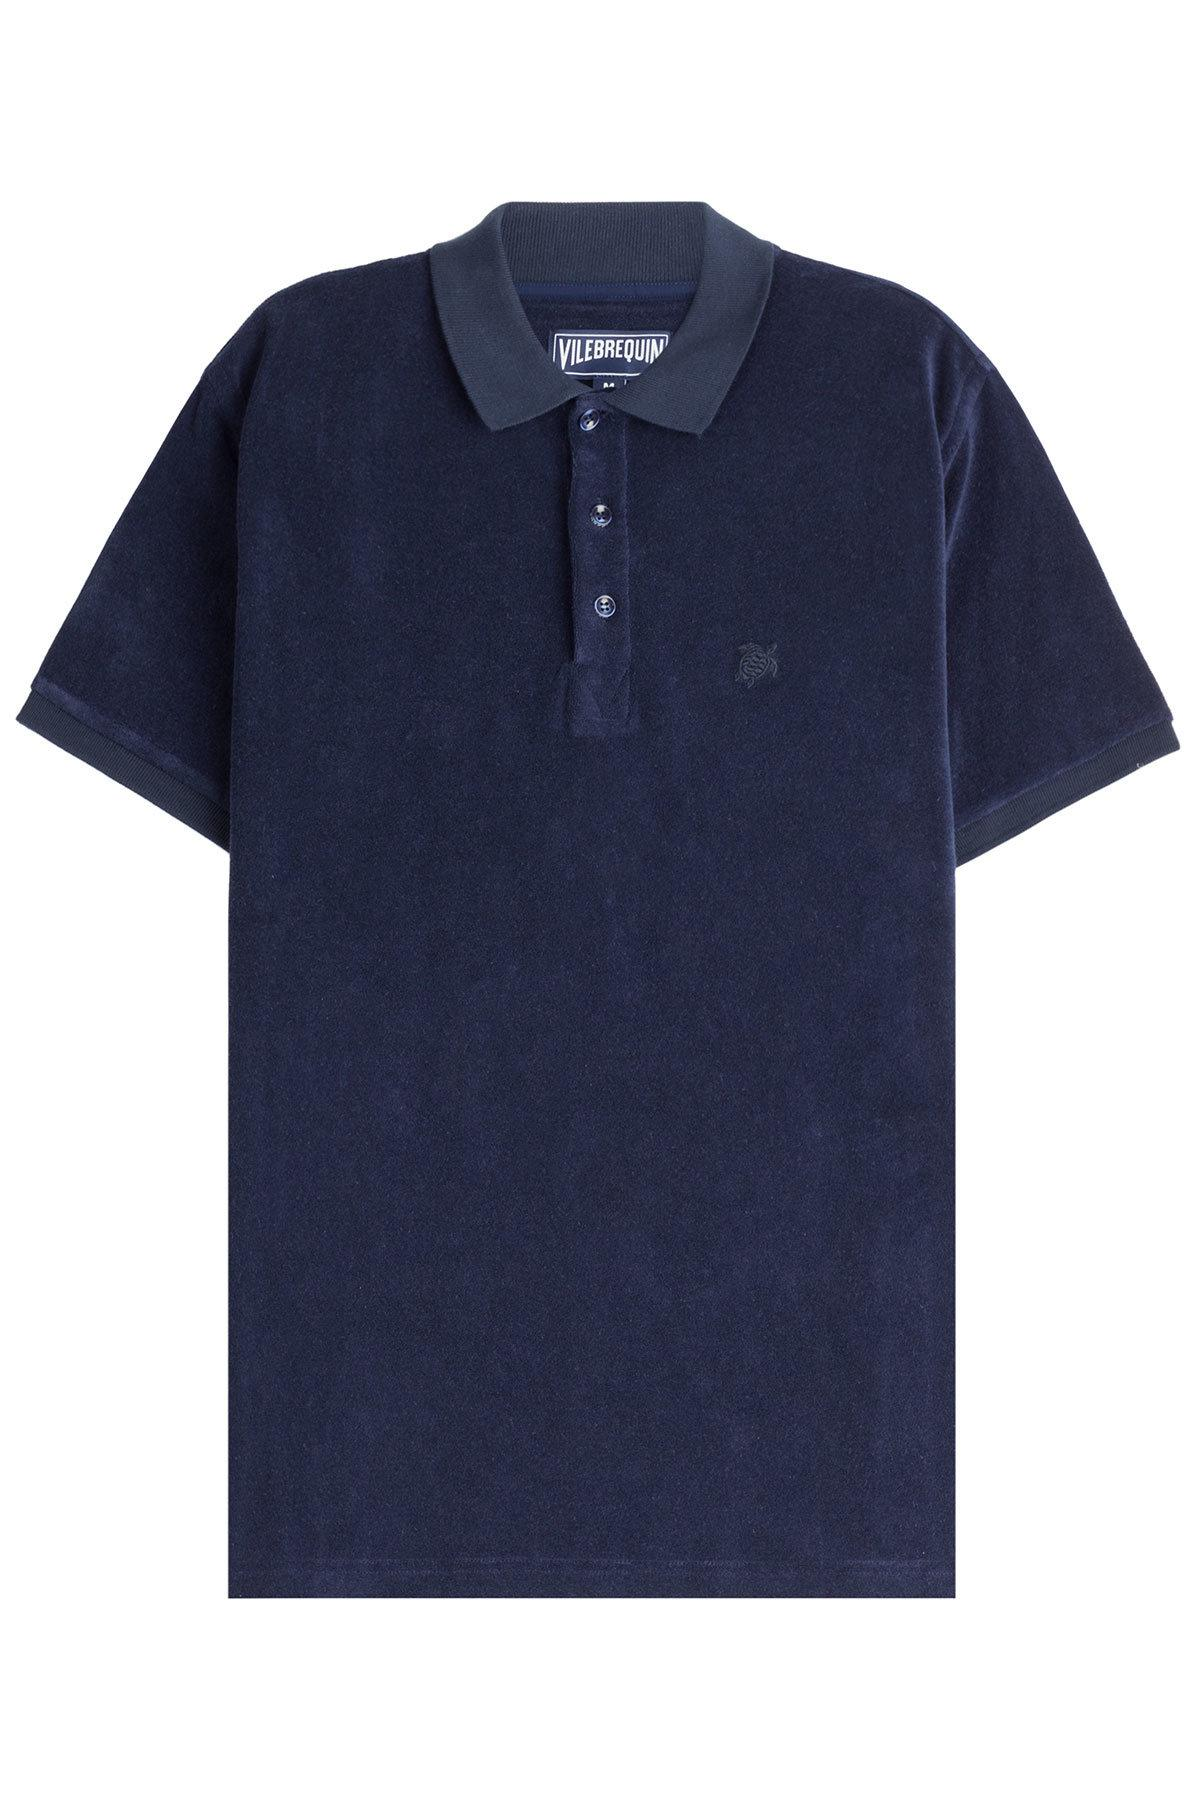 Vilebrequin terry cotton polo shirt in blue for men lyst for Mens terry cloth polo shirt